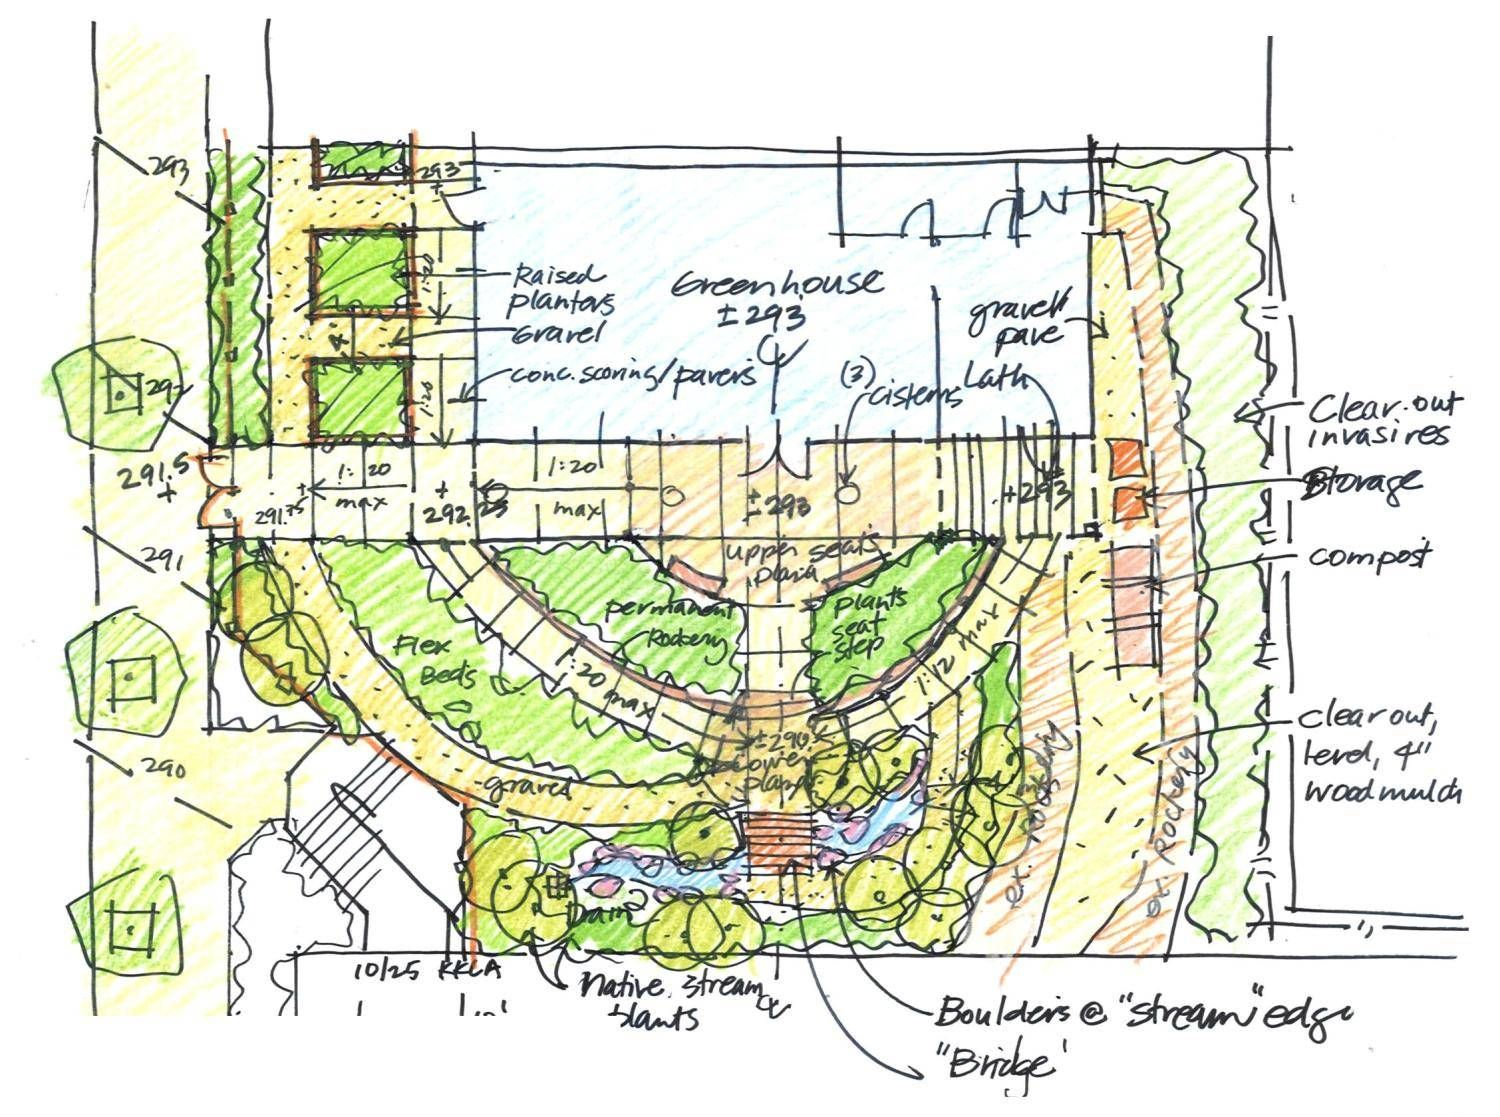 Trend landscape plan drawing 5 how to draw architectural for Garden design sketches